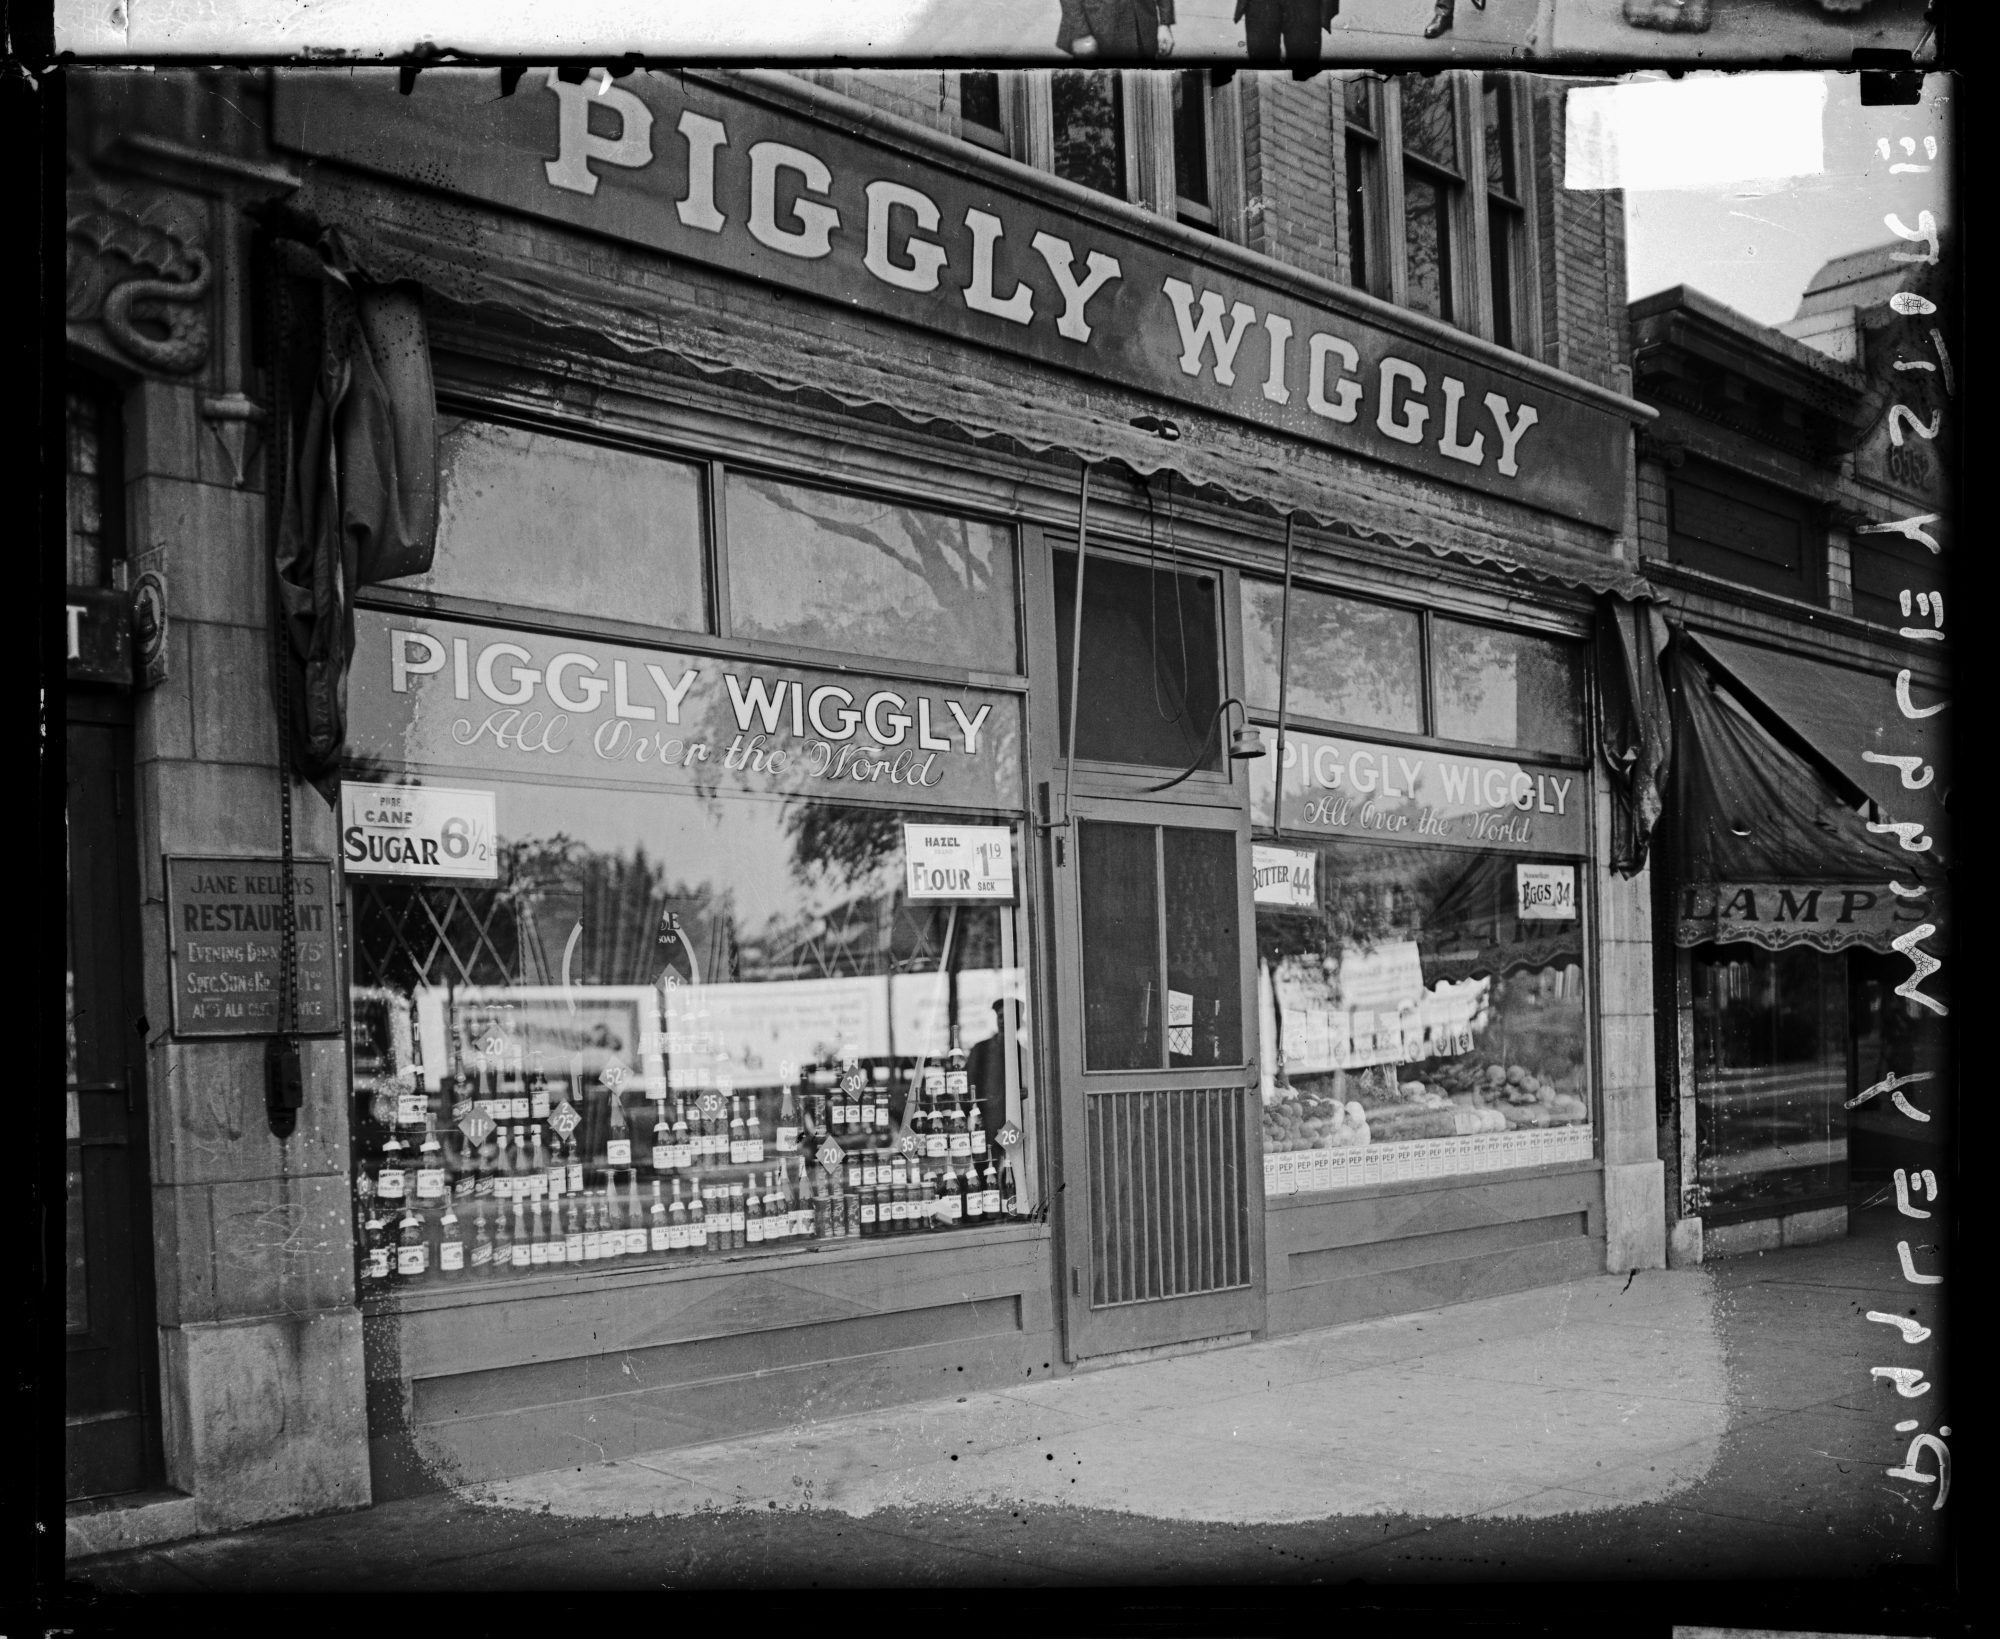 Piggly Wiggly Store Front